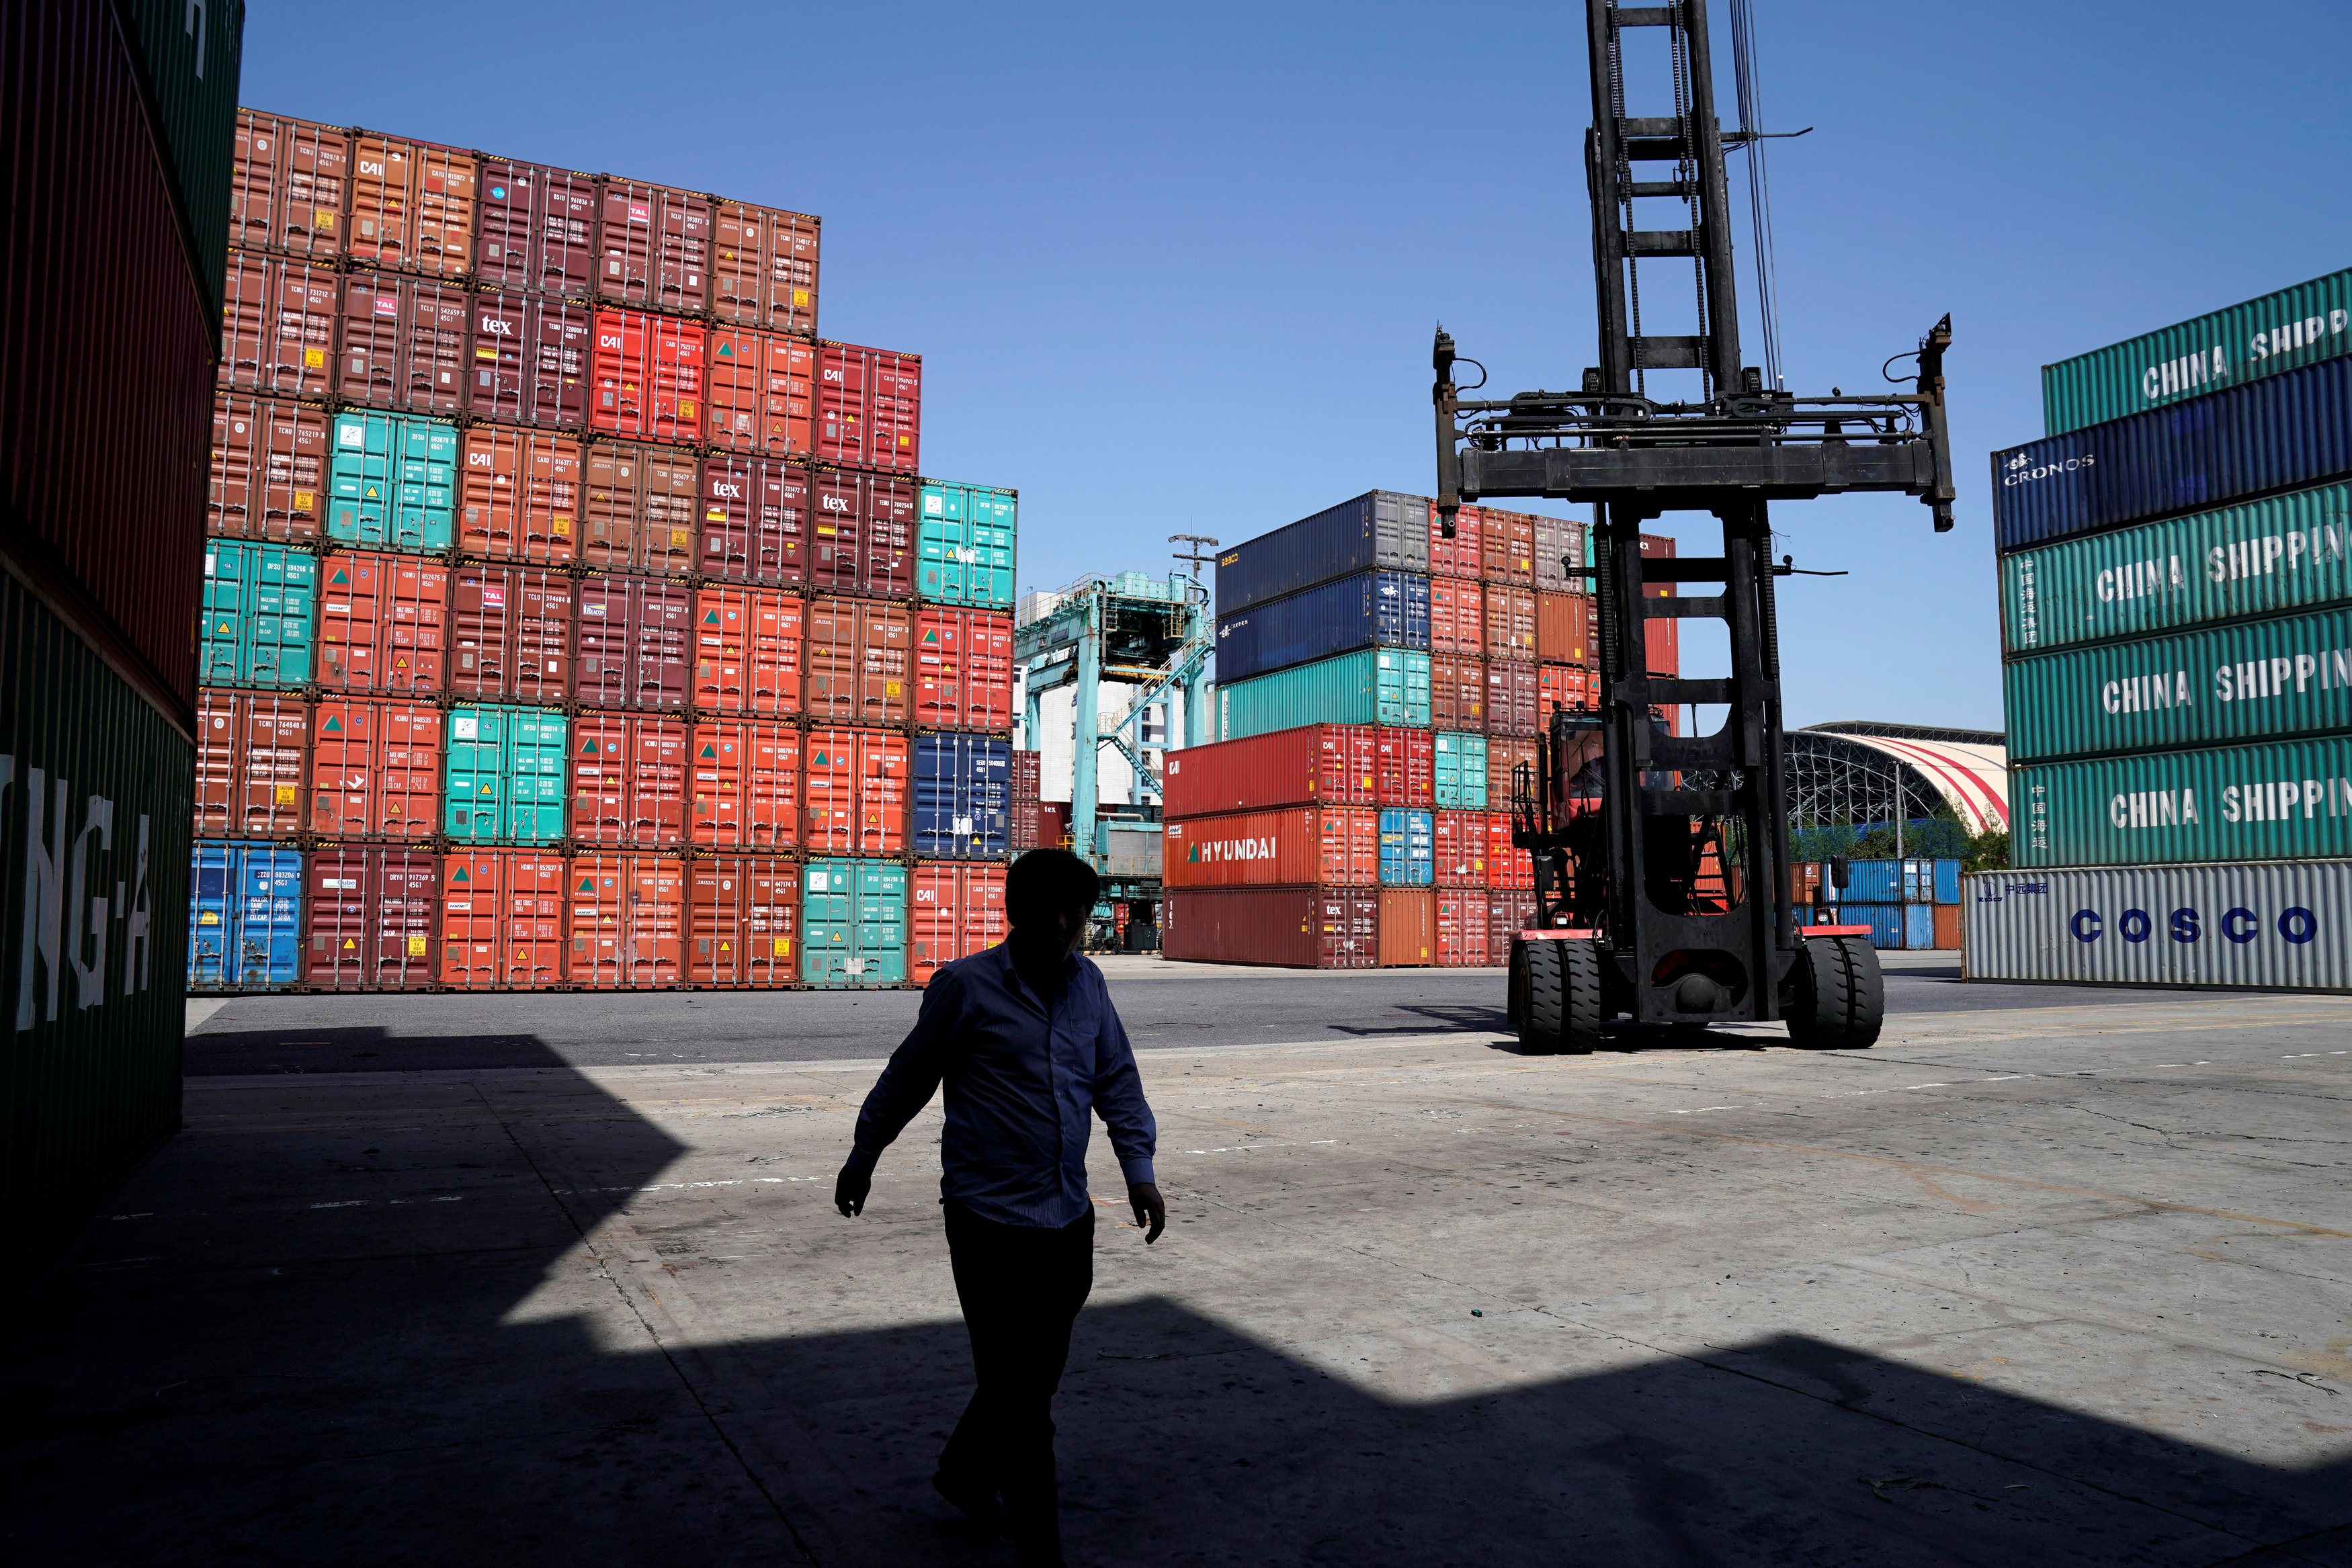 Beijing has announced further measures as it seeks to boost imports amid a trade war with the United States. Photo: Reuters